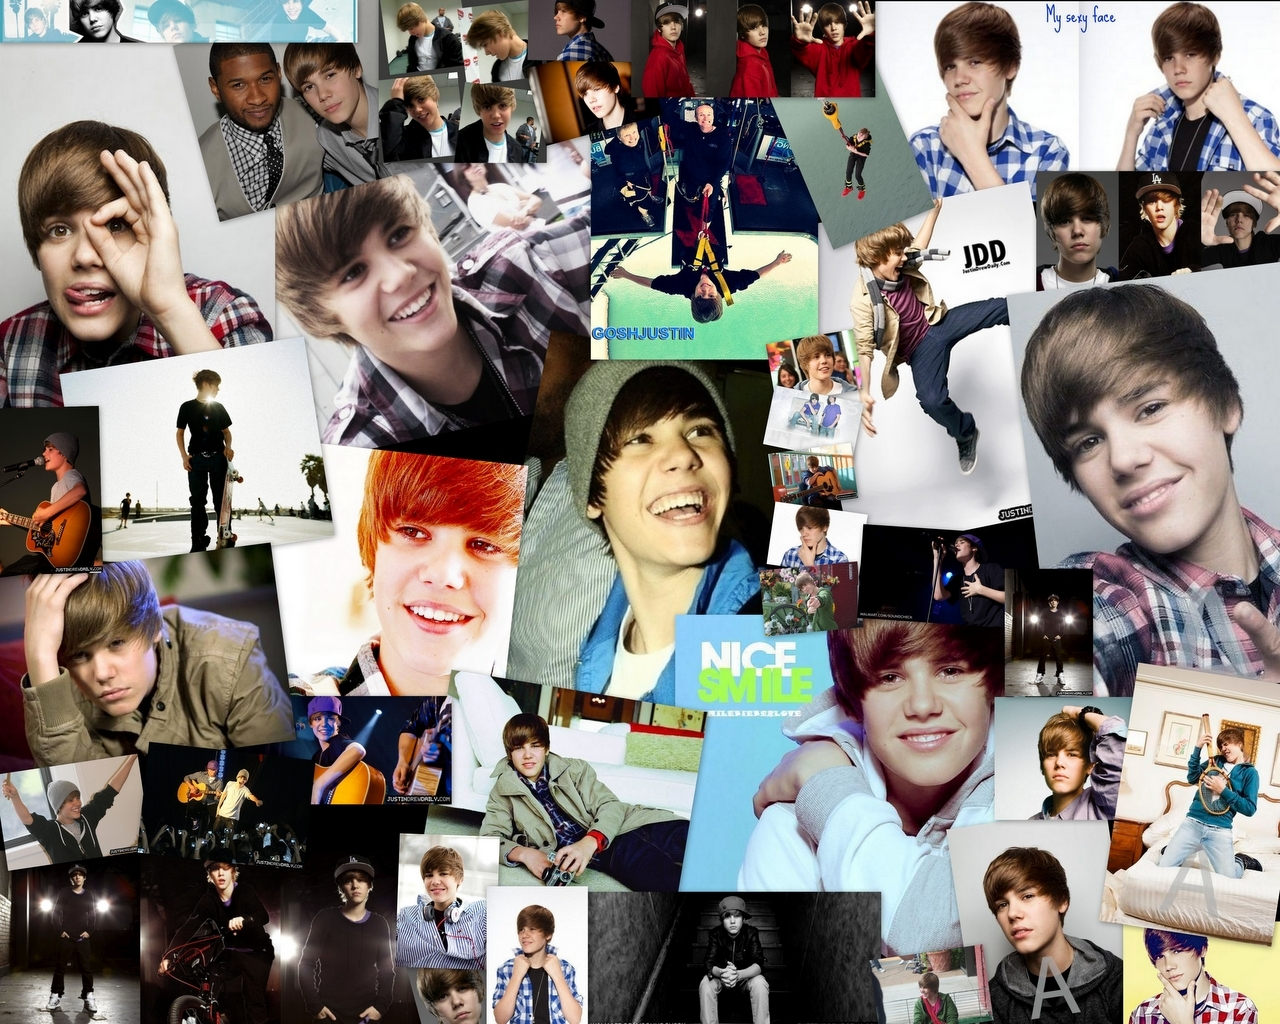 Justin Bieber - Wallpaper collage. - Justin Bieber Wallpaper ...